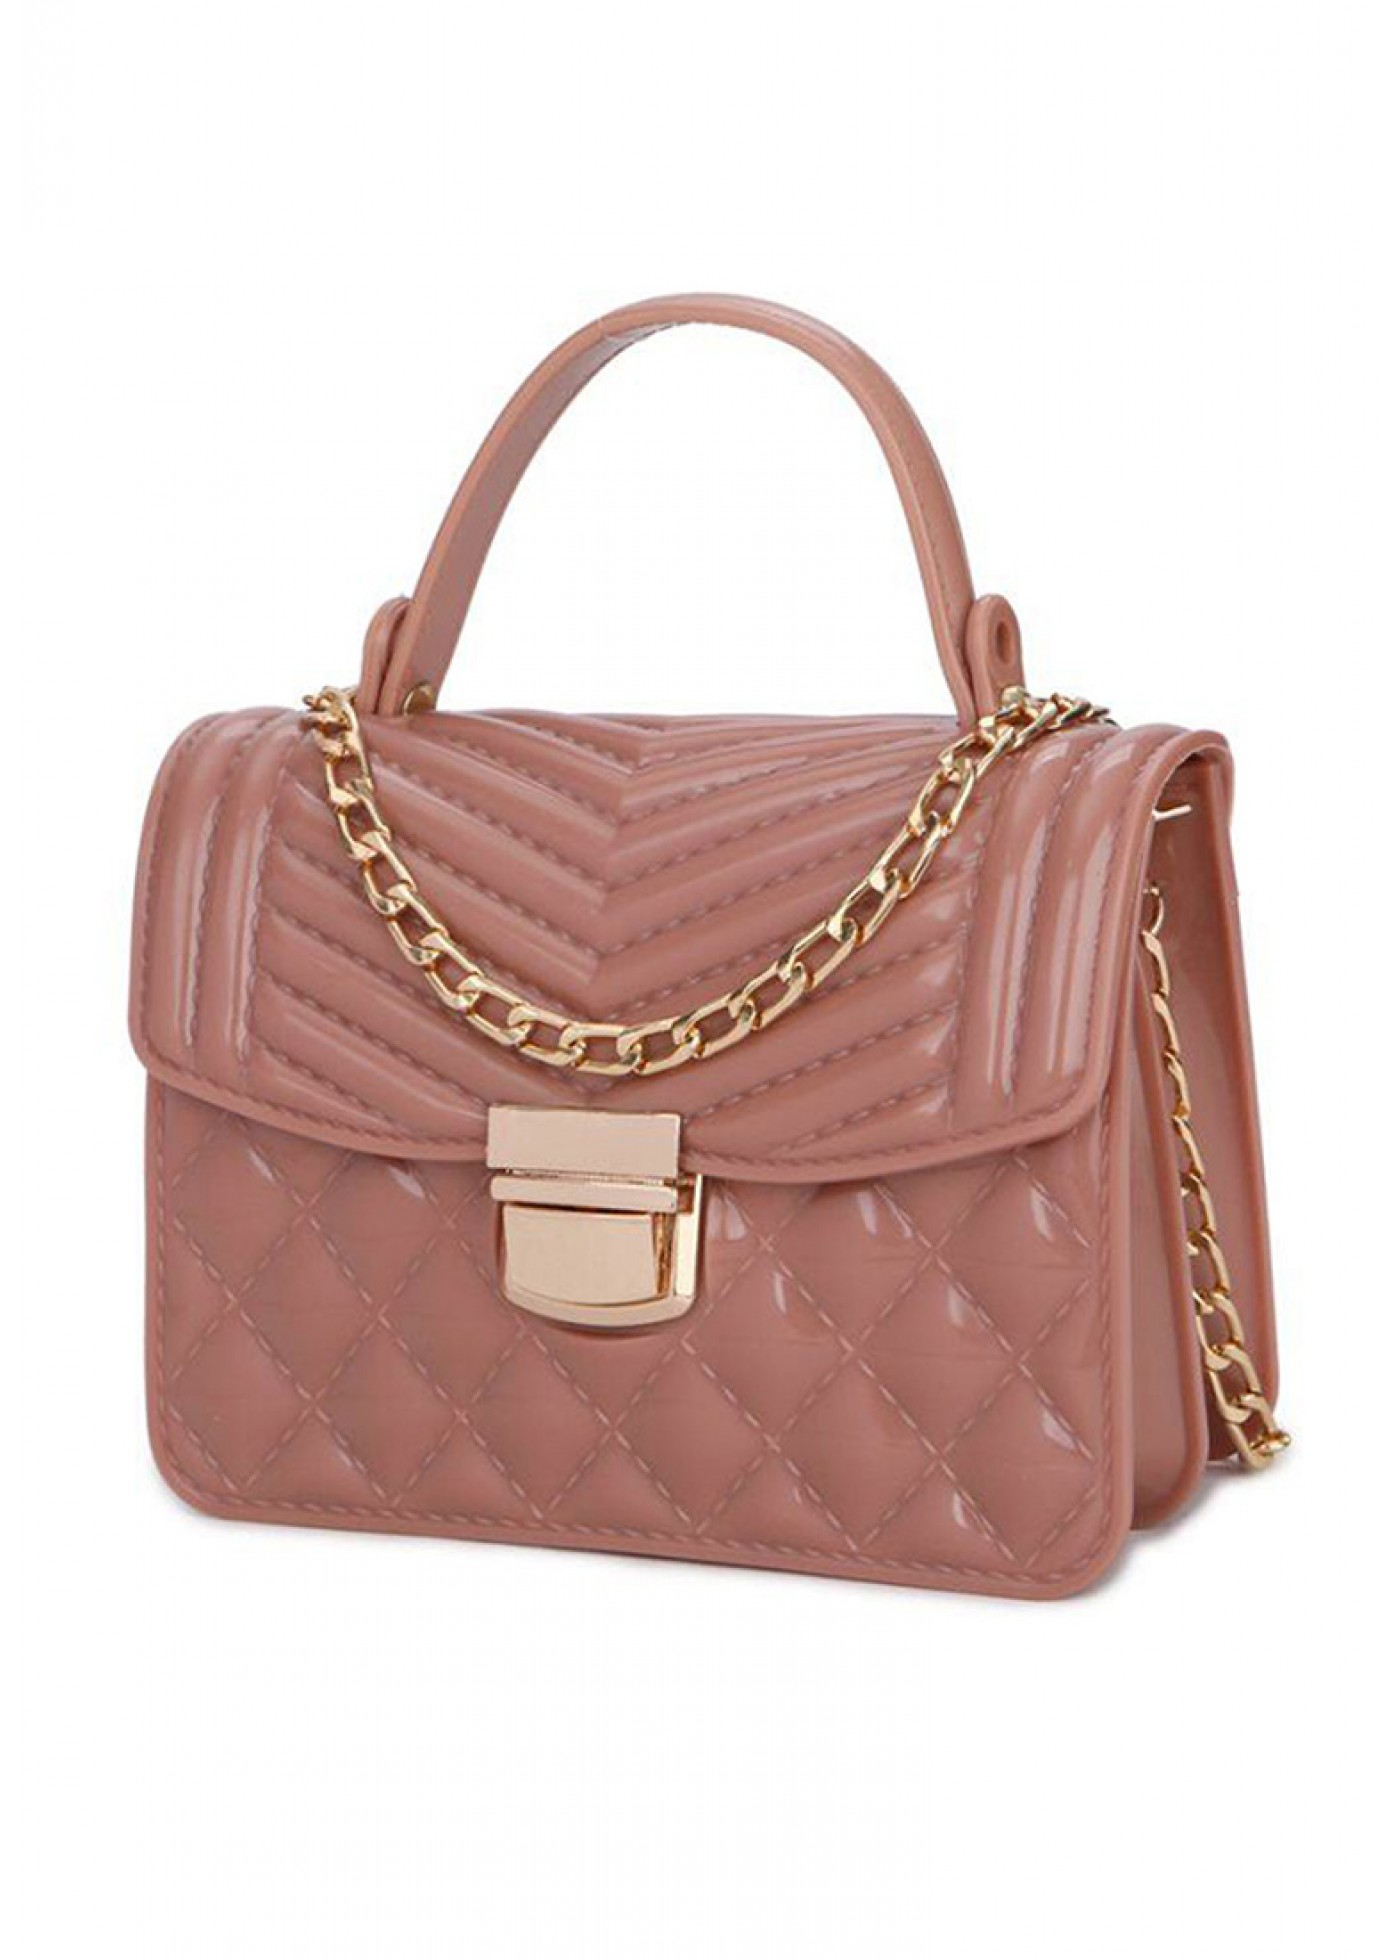 [NEW] Goddess Brie Pink Bag